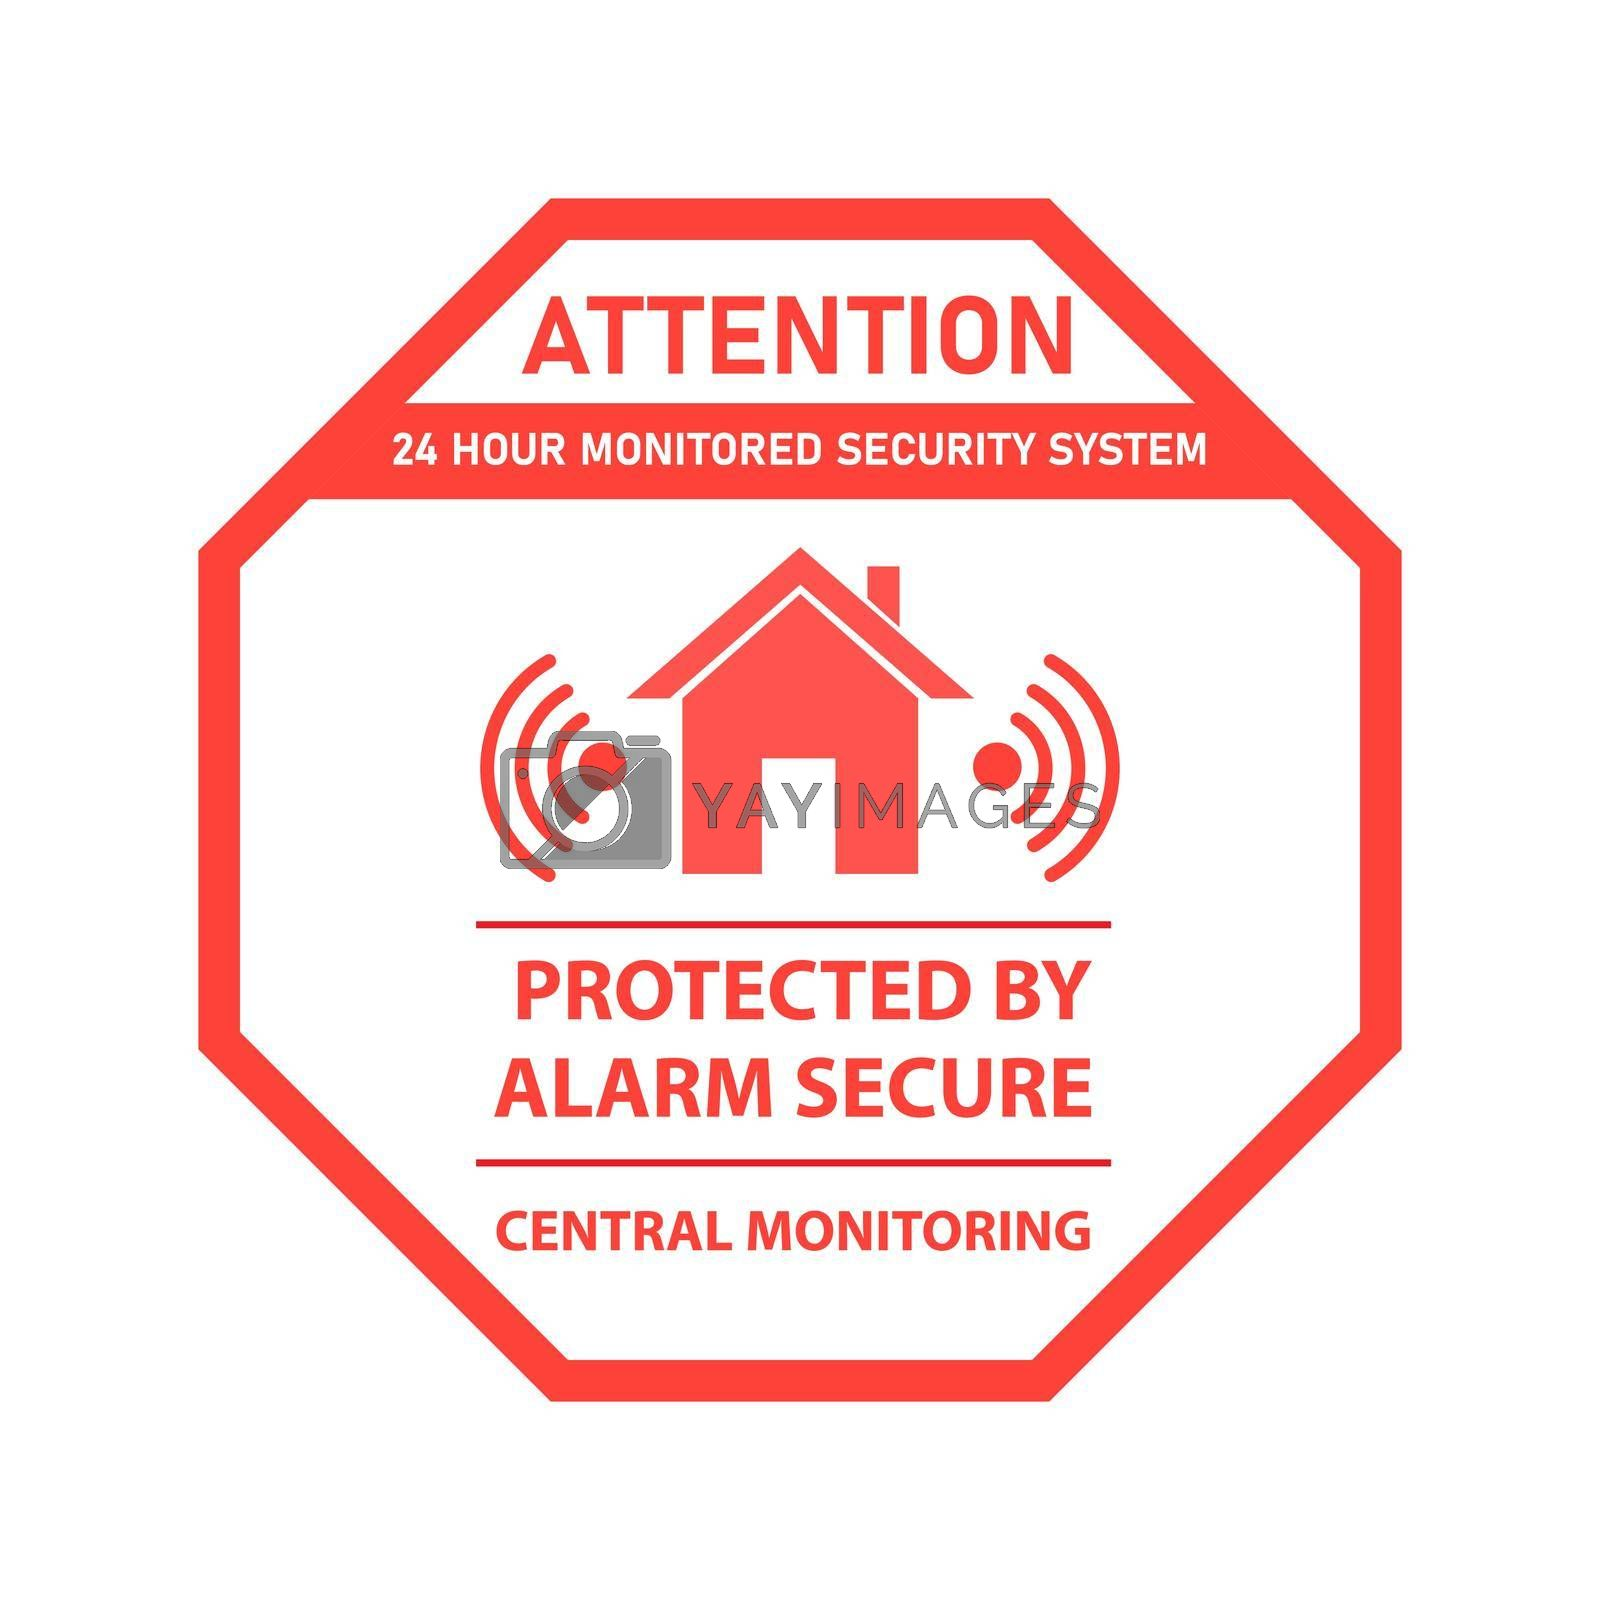 Icon or sign of a real estate security alarm system. Vector illustration, flat style.